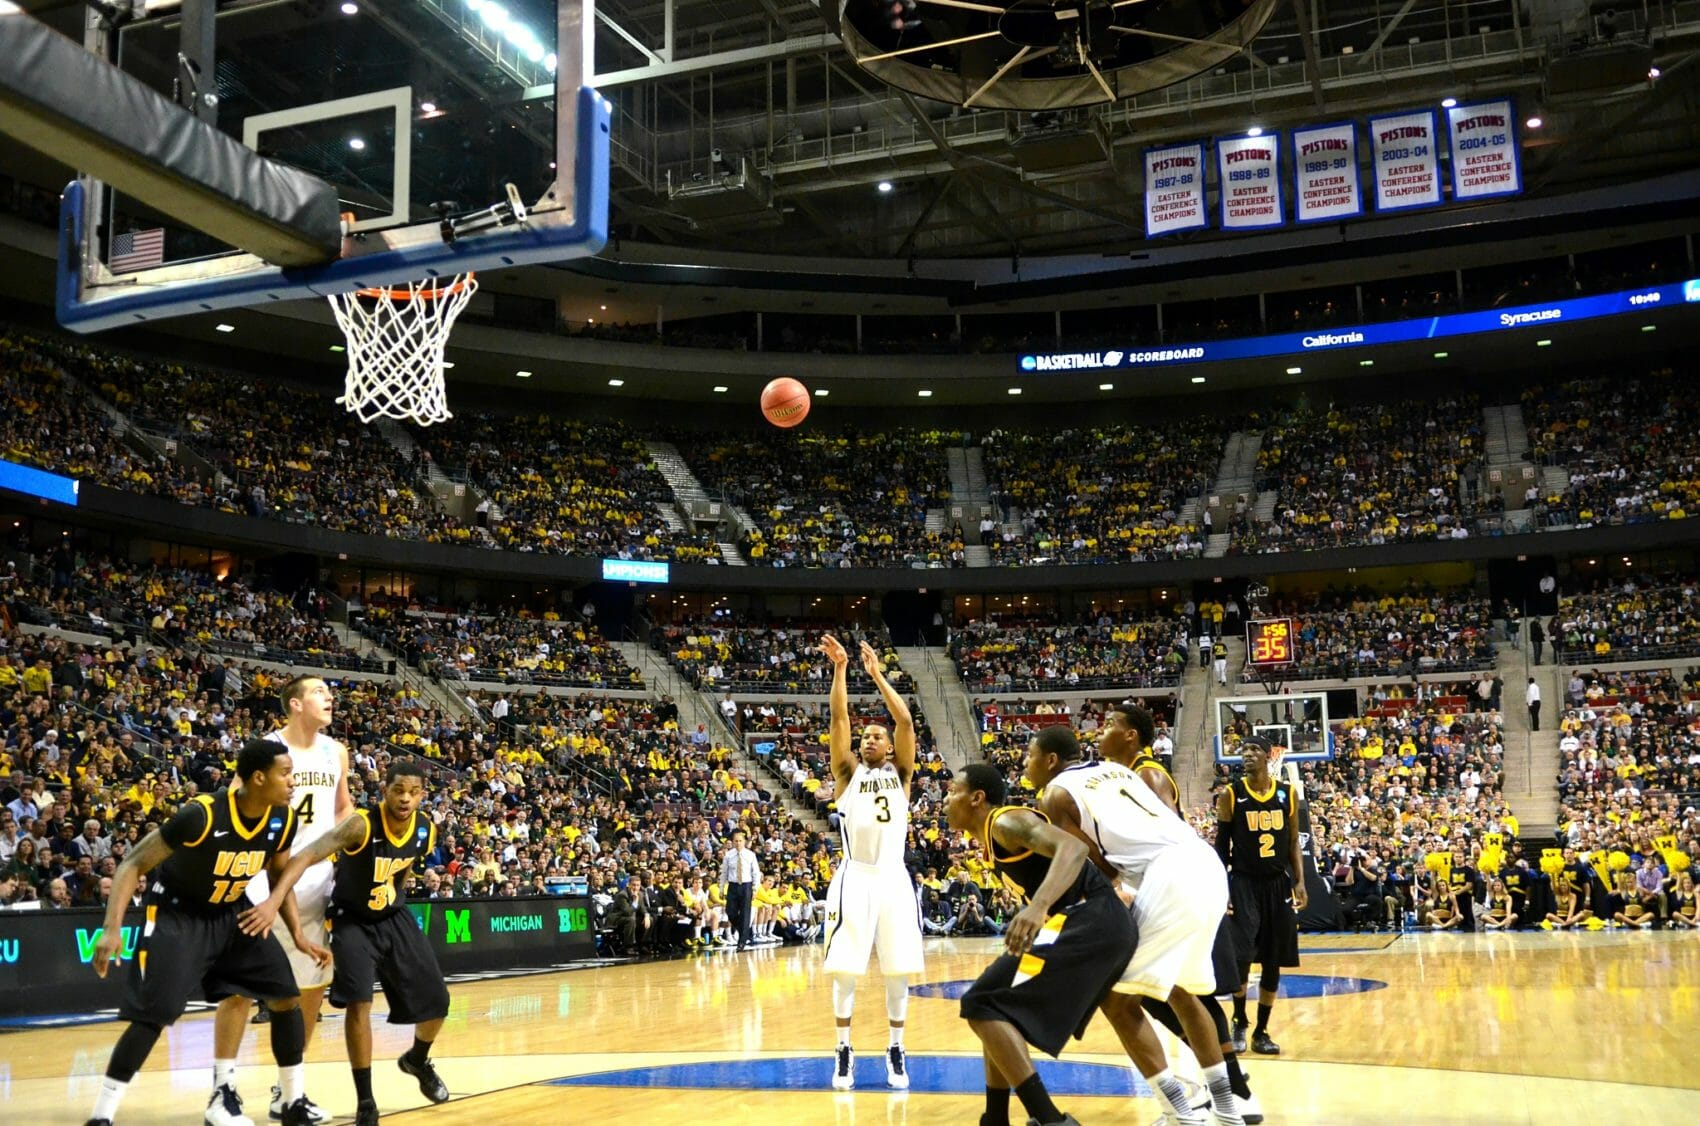 Michigan 78, VCU 53 – 32